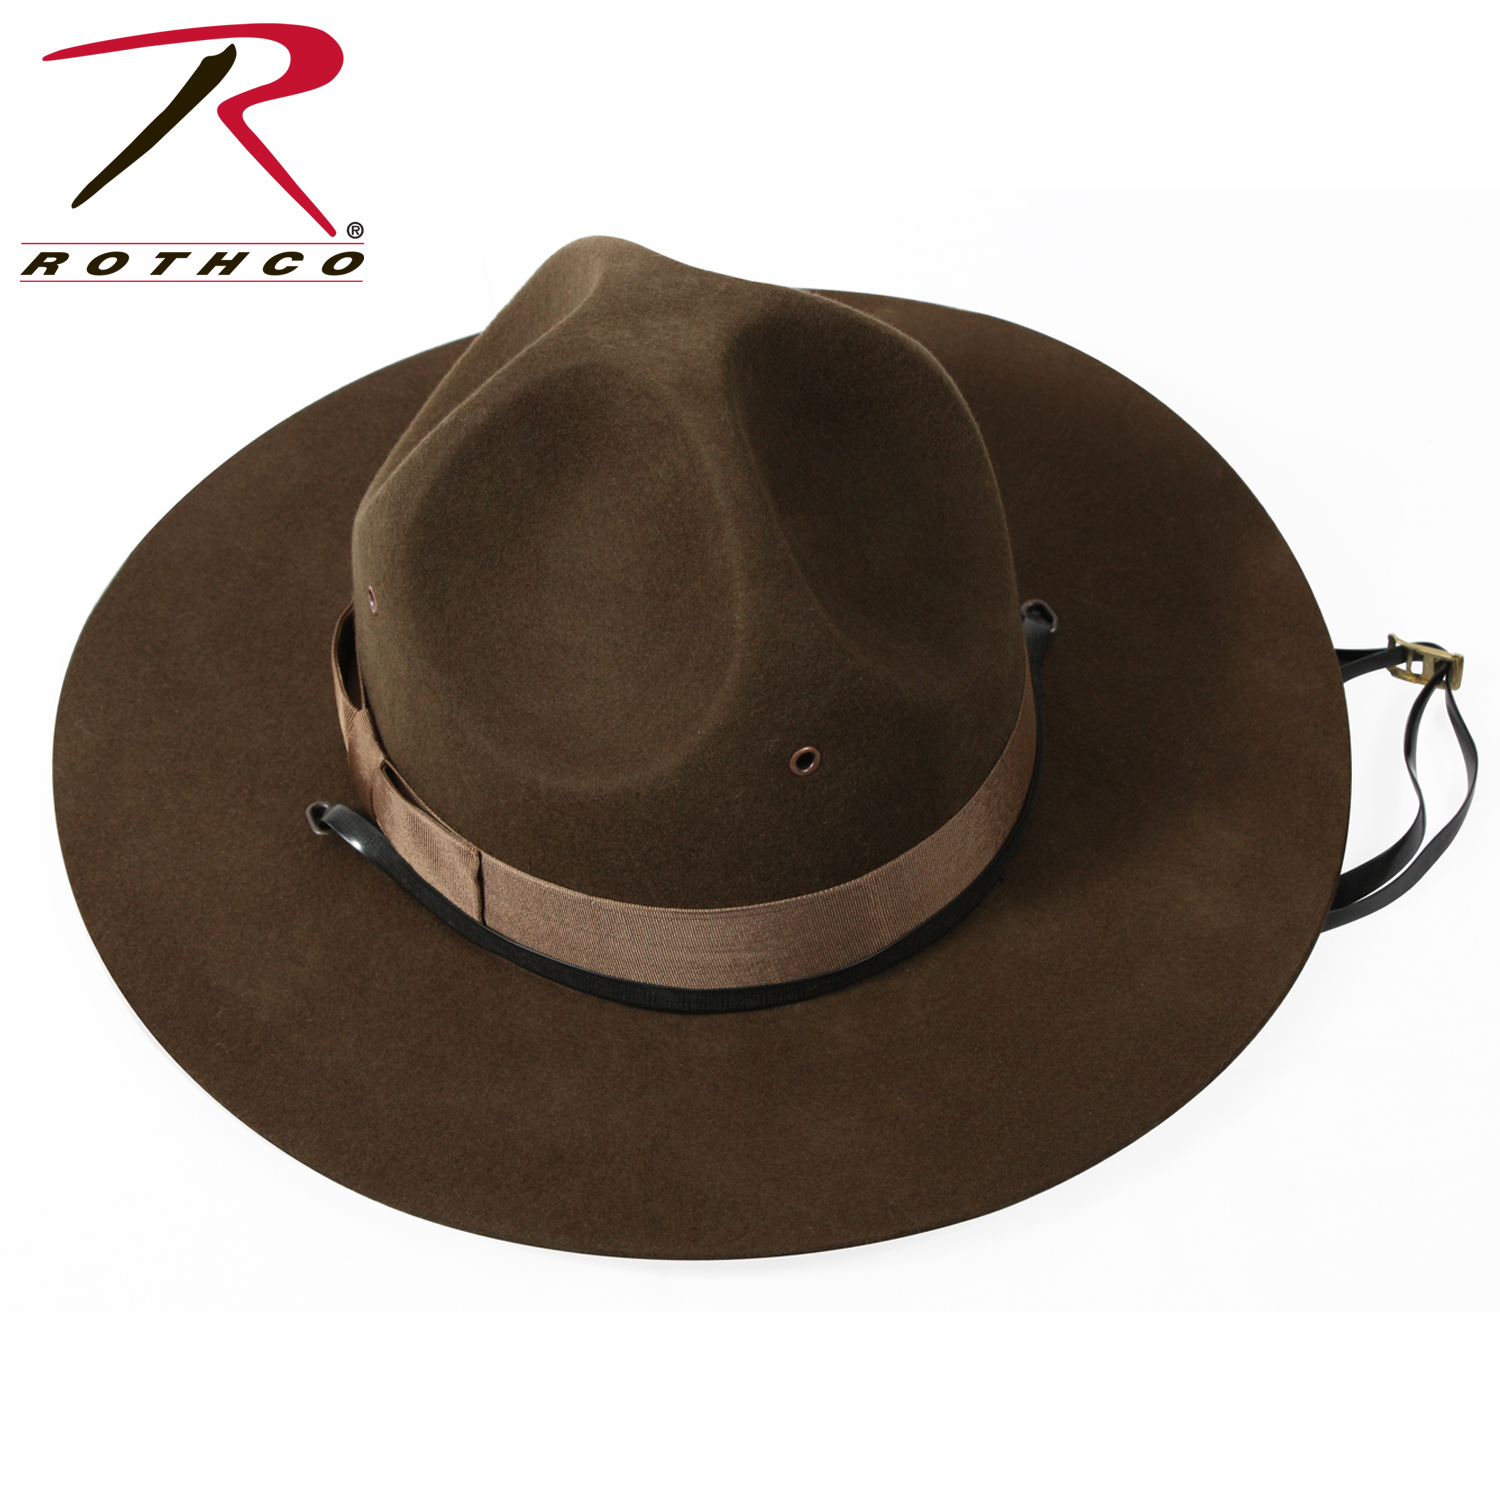 0352c88b18a Rothco Military Campaign Hat